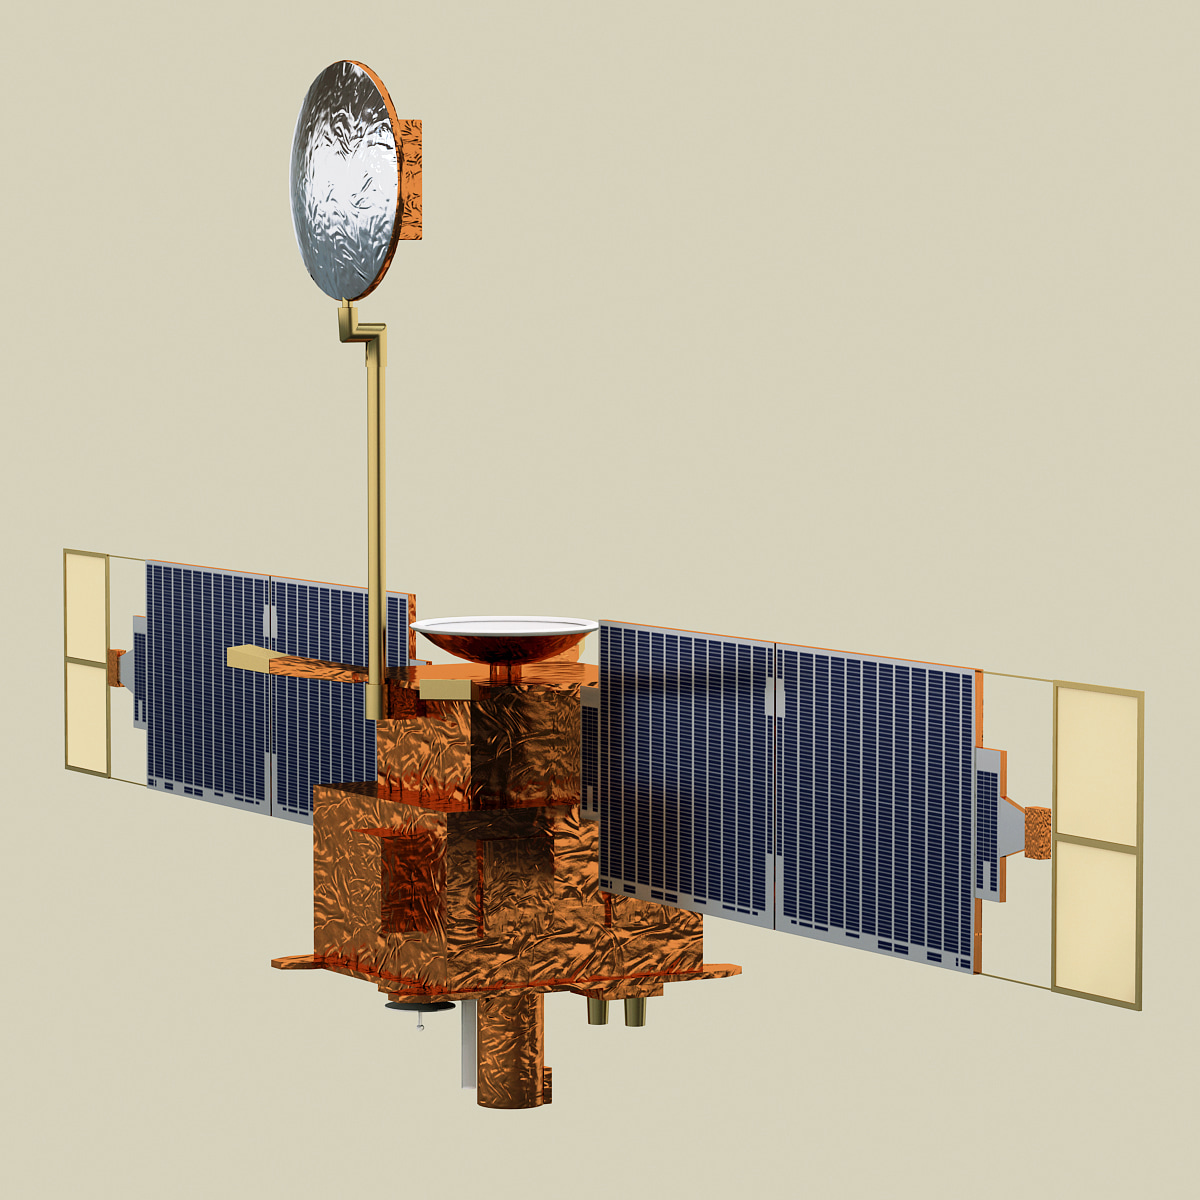 Mars_Global_Surveyor_Satellite_001.jpg